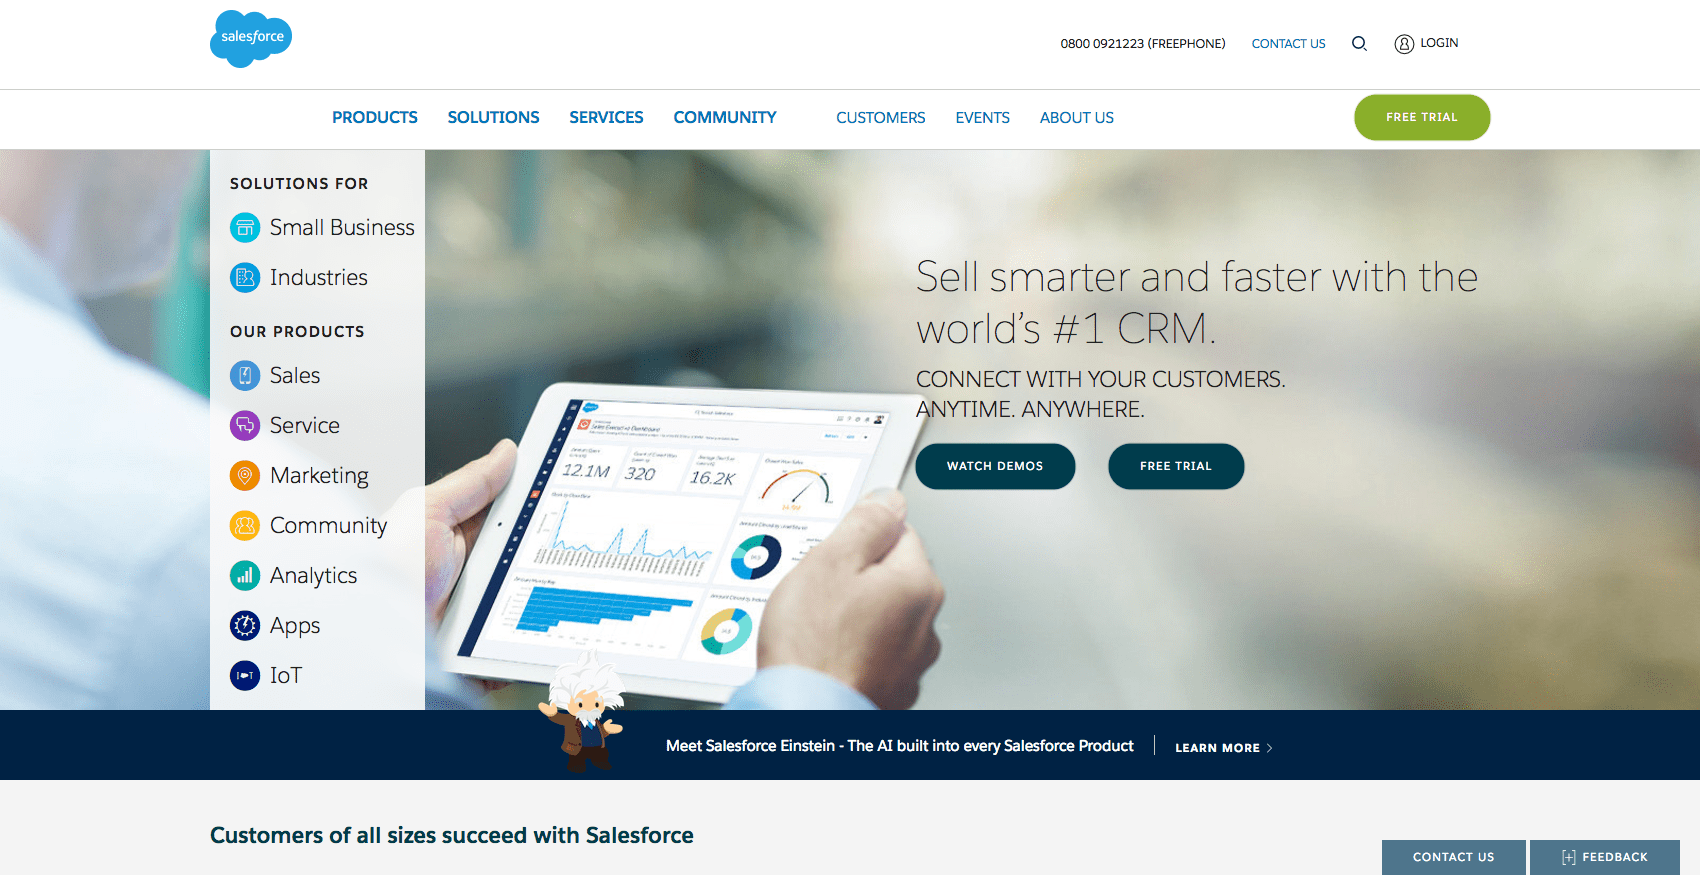 Salesforce, predictably, offers some great content marketing examples